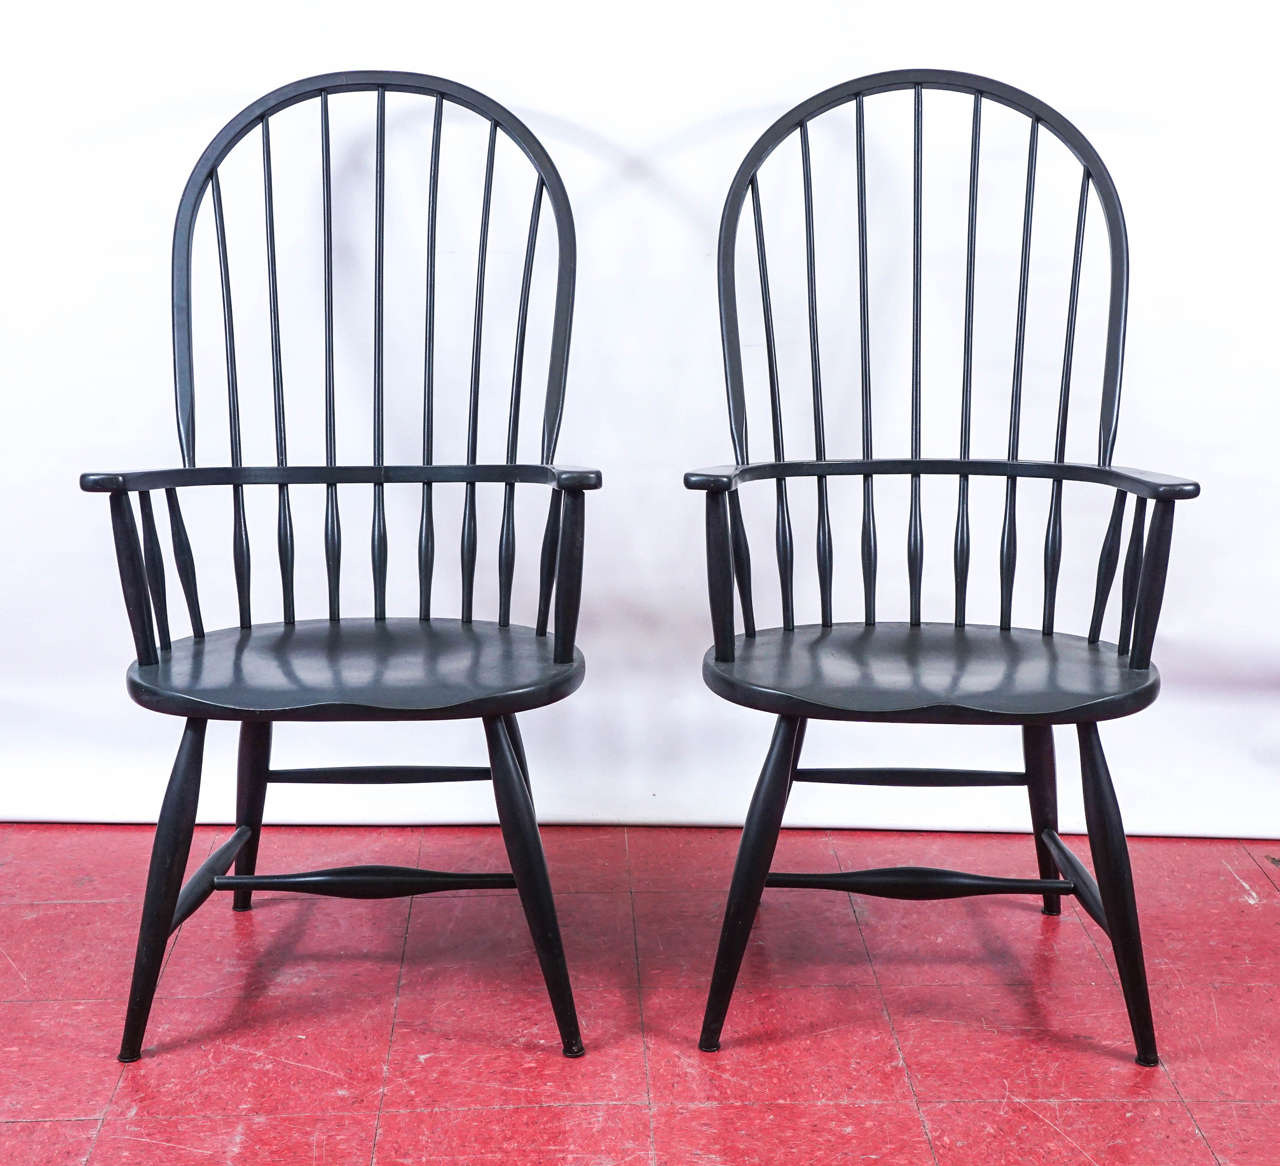 These sack back Windsor armchairs are tightly constructed with double stretchers and secured arms and backs.  Measure: Arm height: 26.75